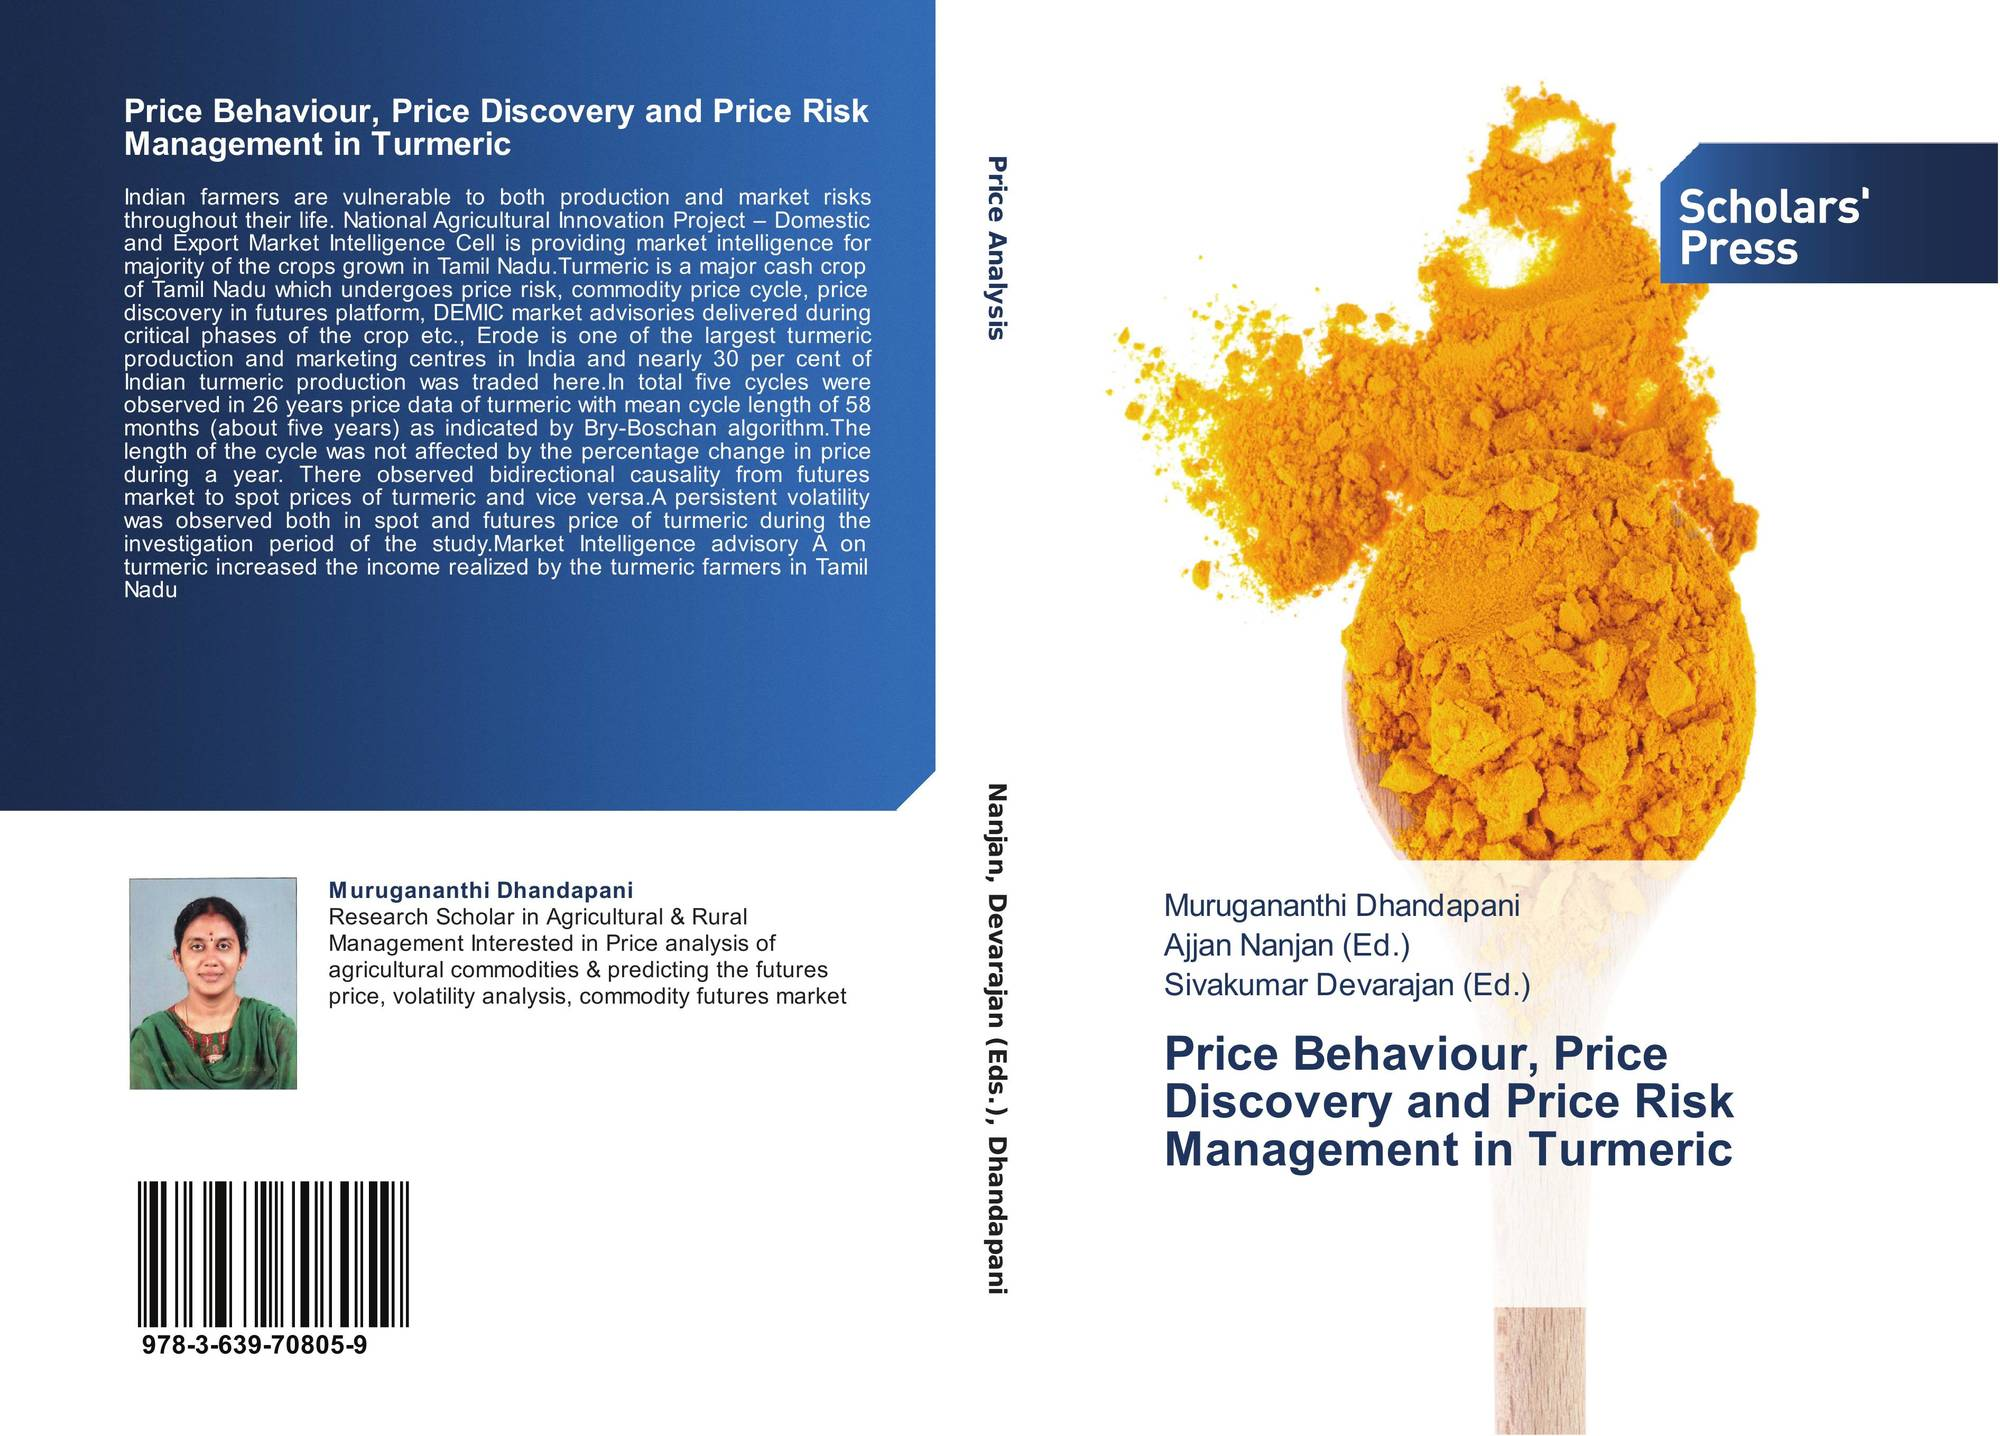 price discovery of the indian commodity market In the indian commodity derivatives markets, most of the price series are found to be non-stationary with no tendency to revert back to an underlying trend value as they typically exhibit 'random walk' properties, ie, today's prices cannot be used to predict future prices.